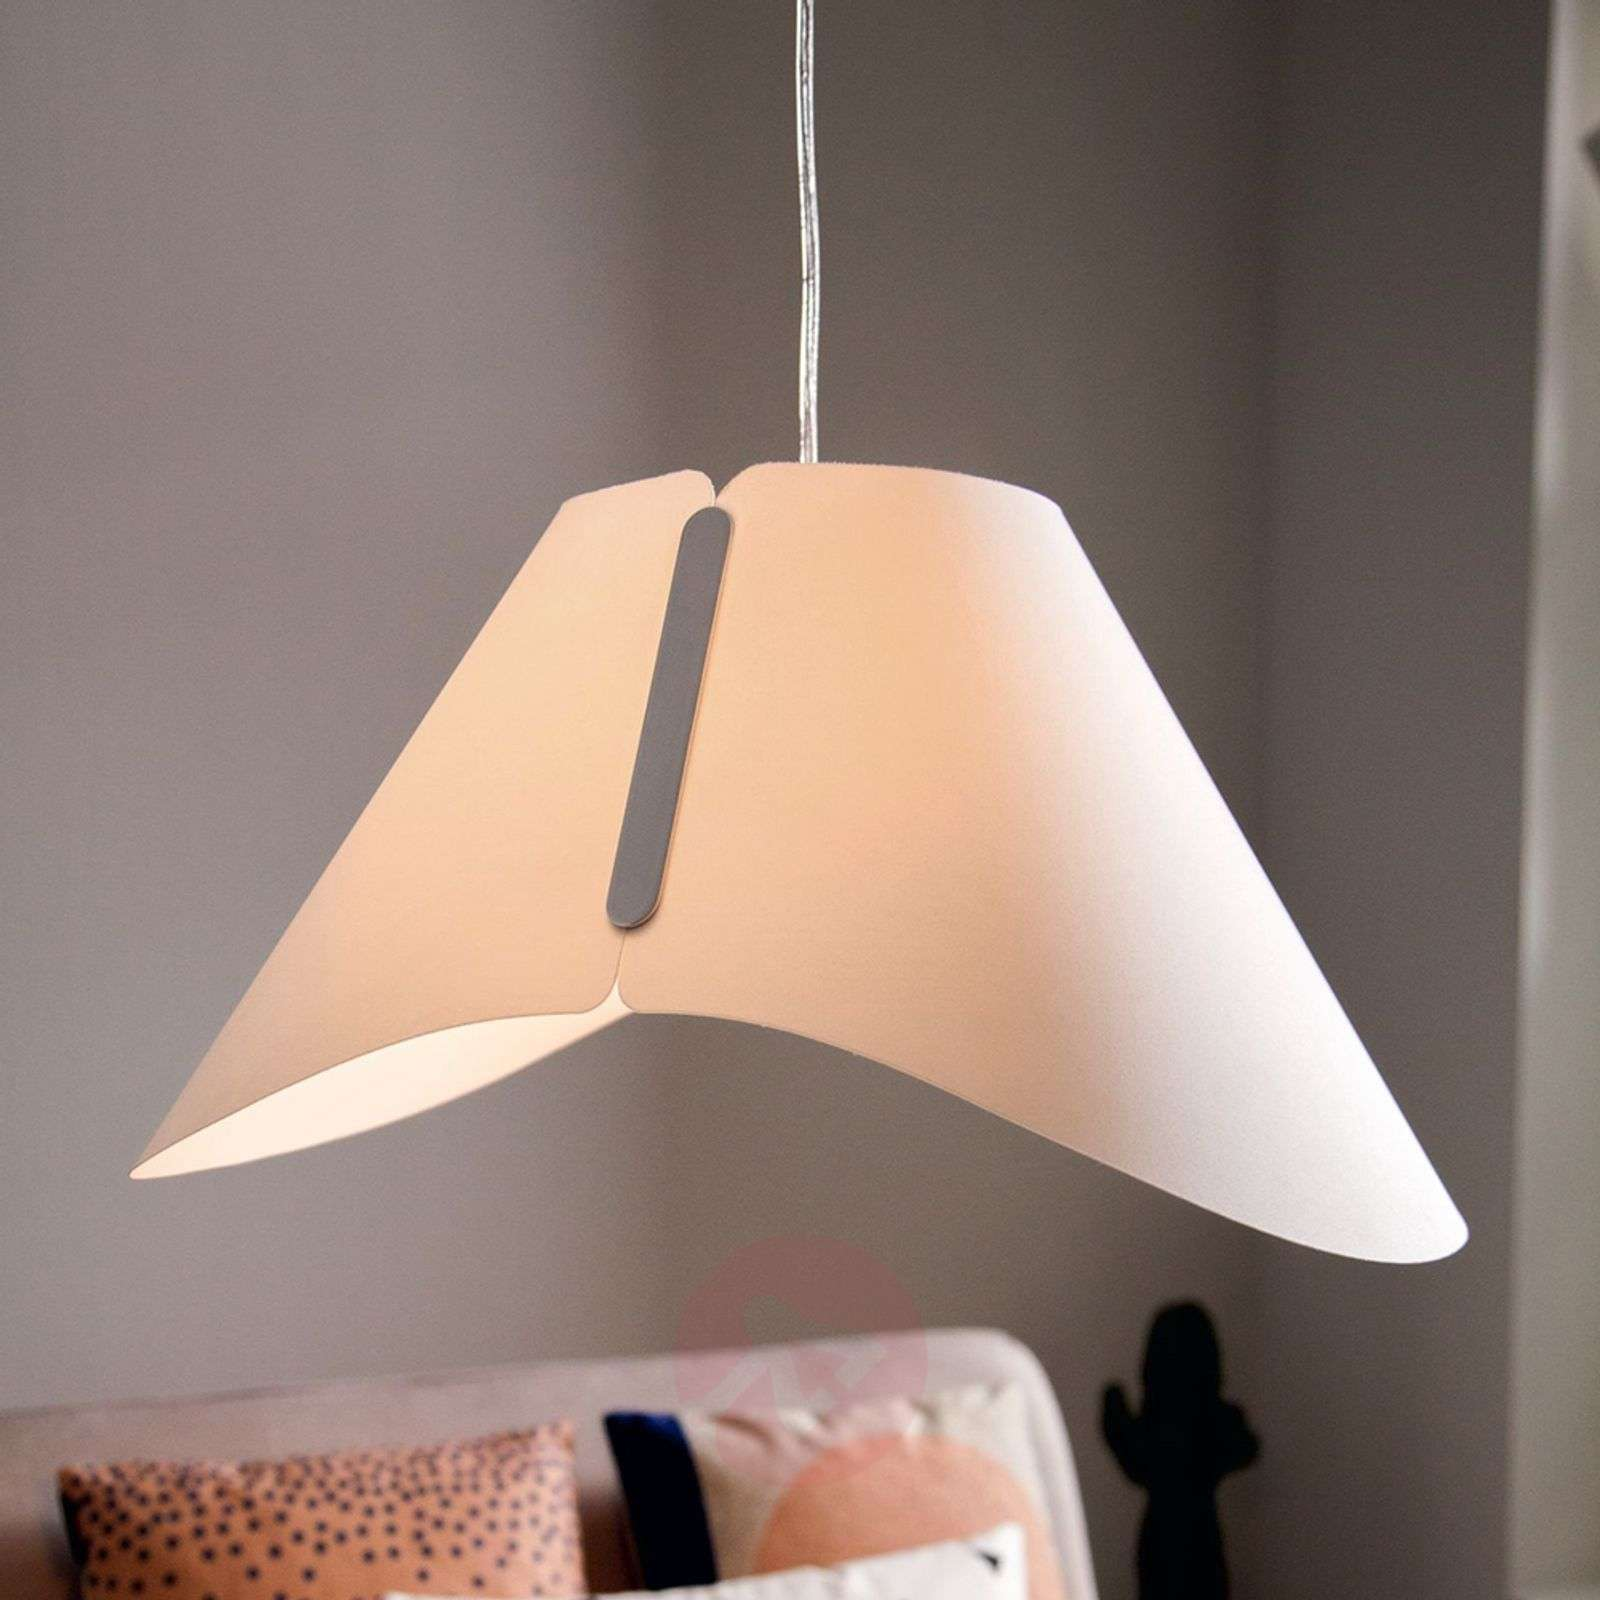 Pretty Hanging Light Ecru Smart Volume Lightscouk